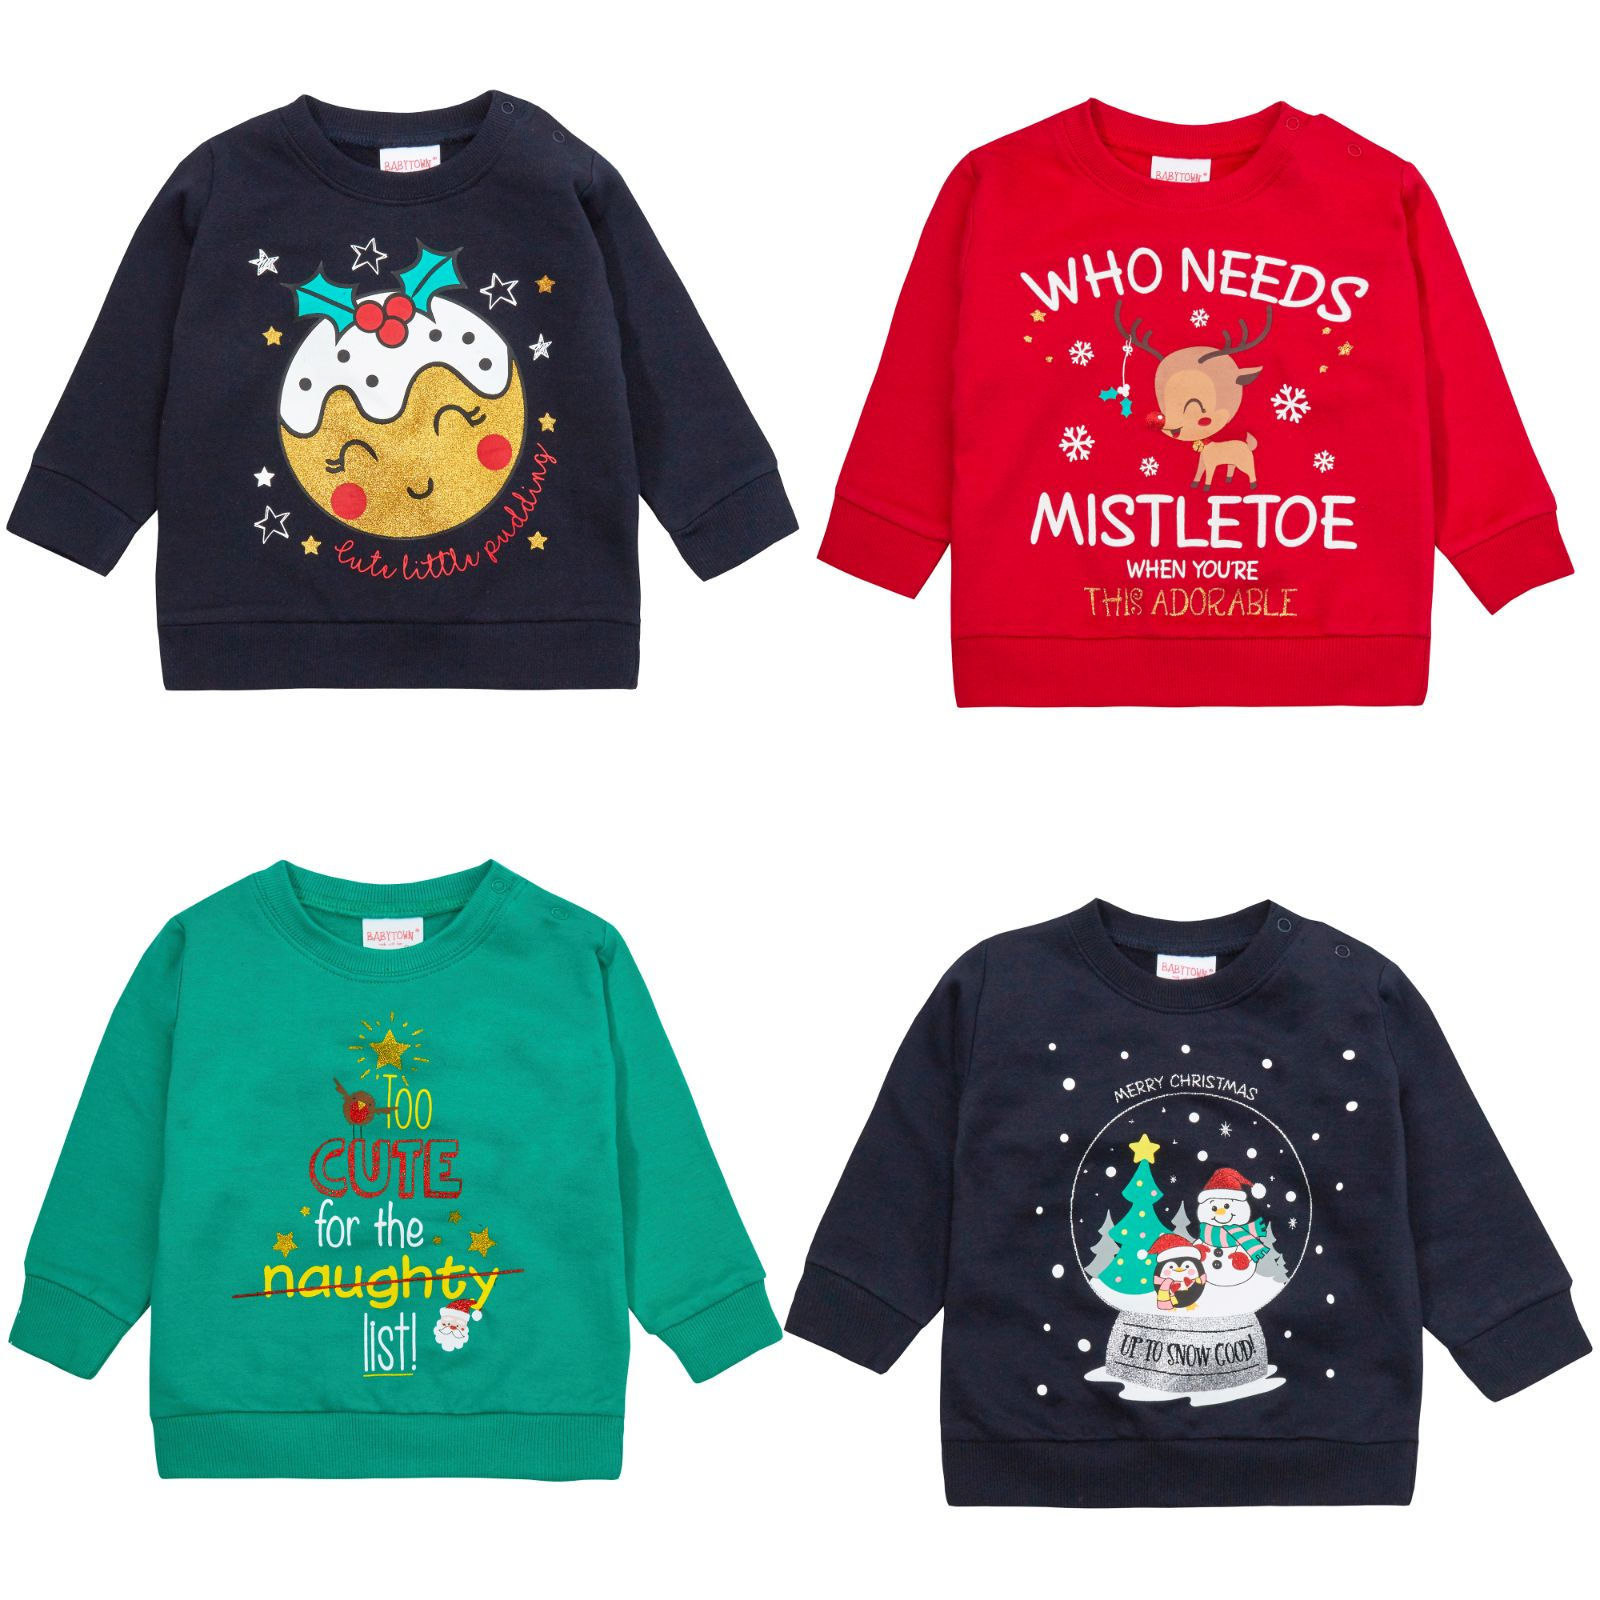 Christmas Tops.Details About Infants Christmas Jumpers Novelty Slogan Fun Sweaters Glitter Xmas Tops Size